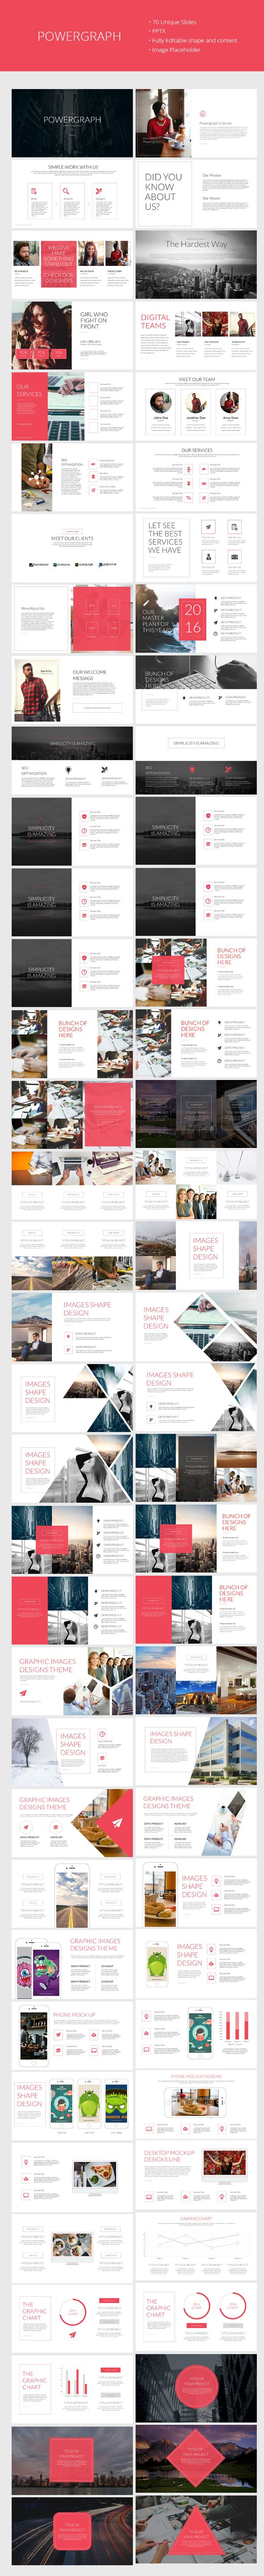 Powergraph Clean Powerpoint Template